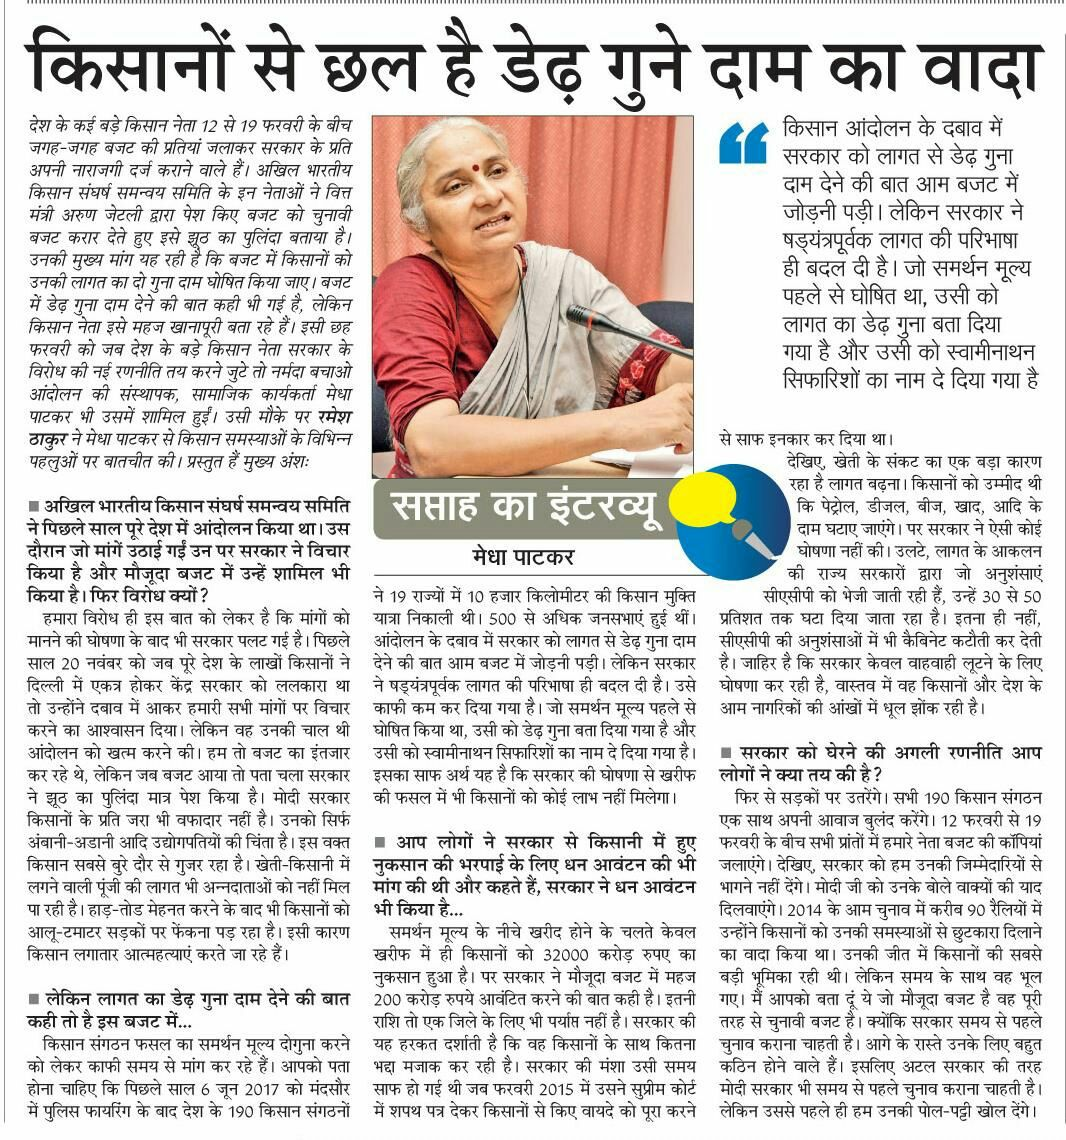 Medha in a newspaper interview on MSP